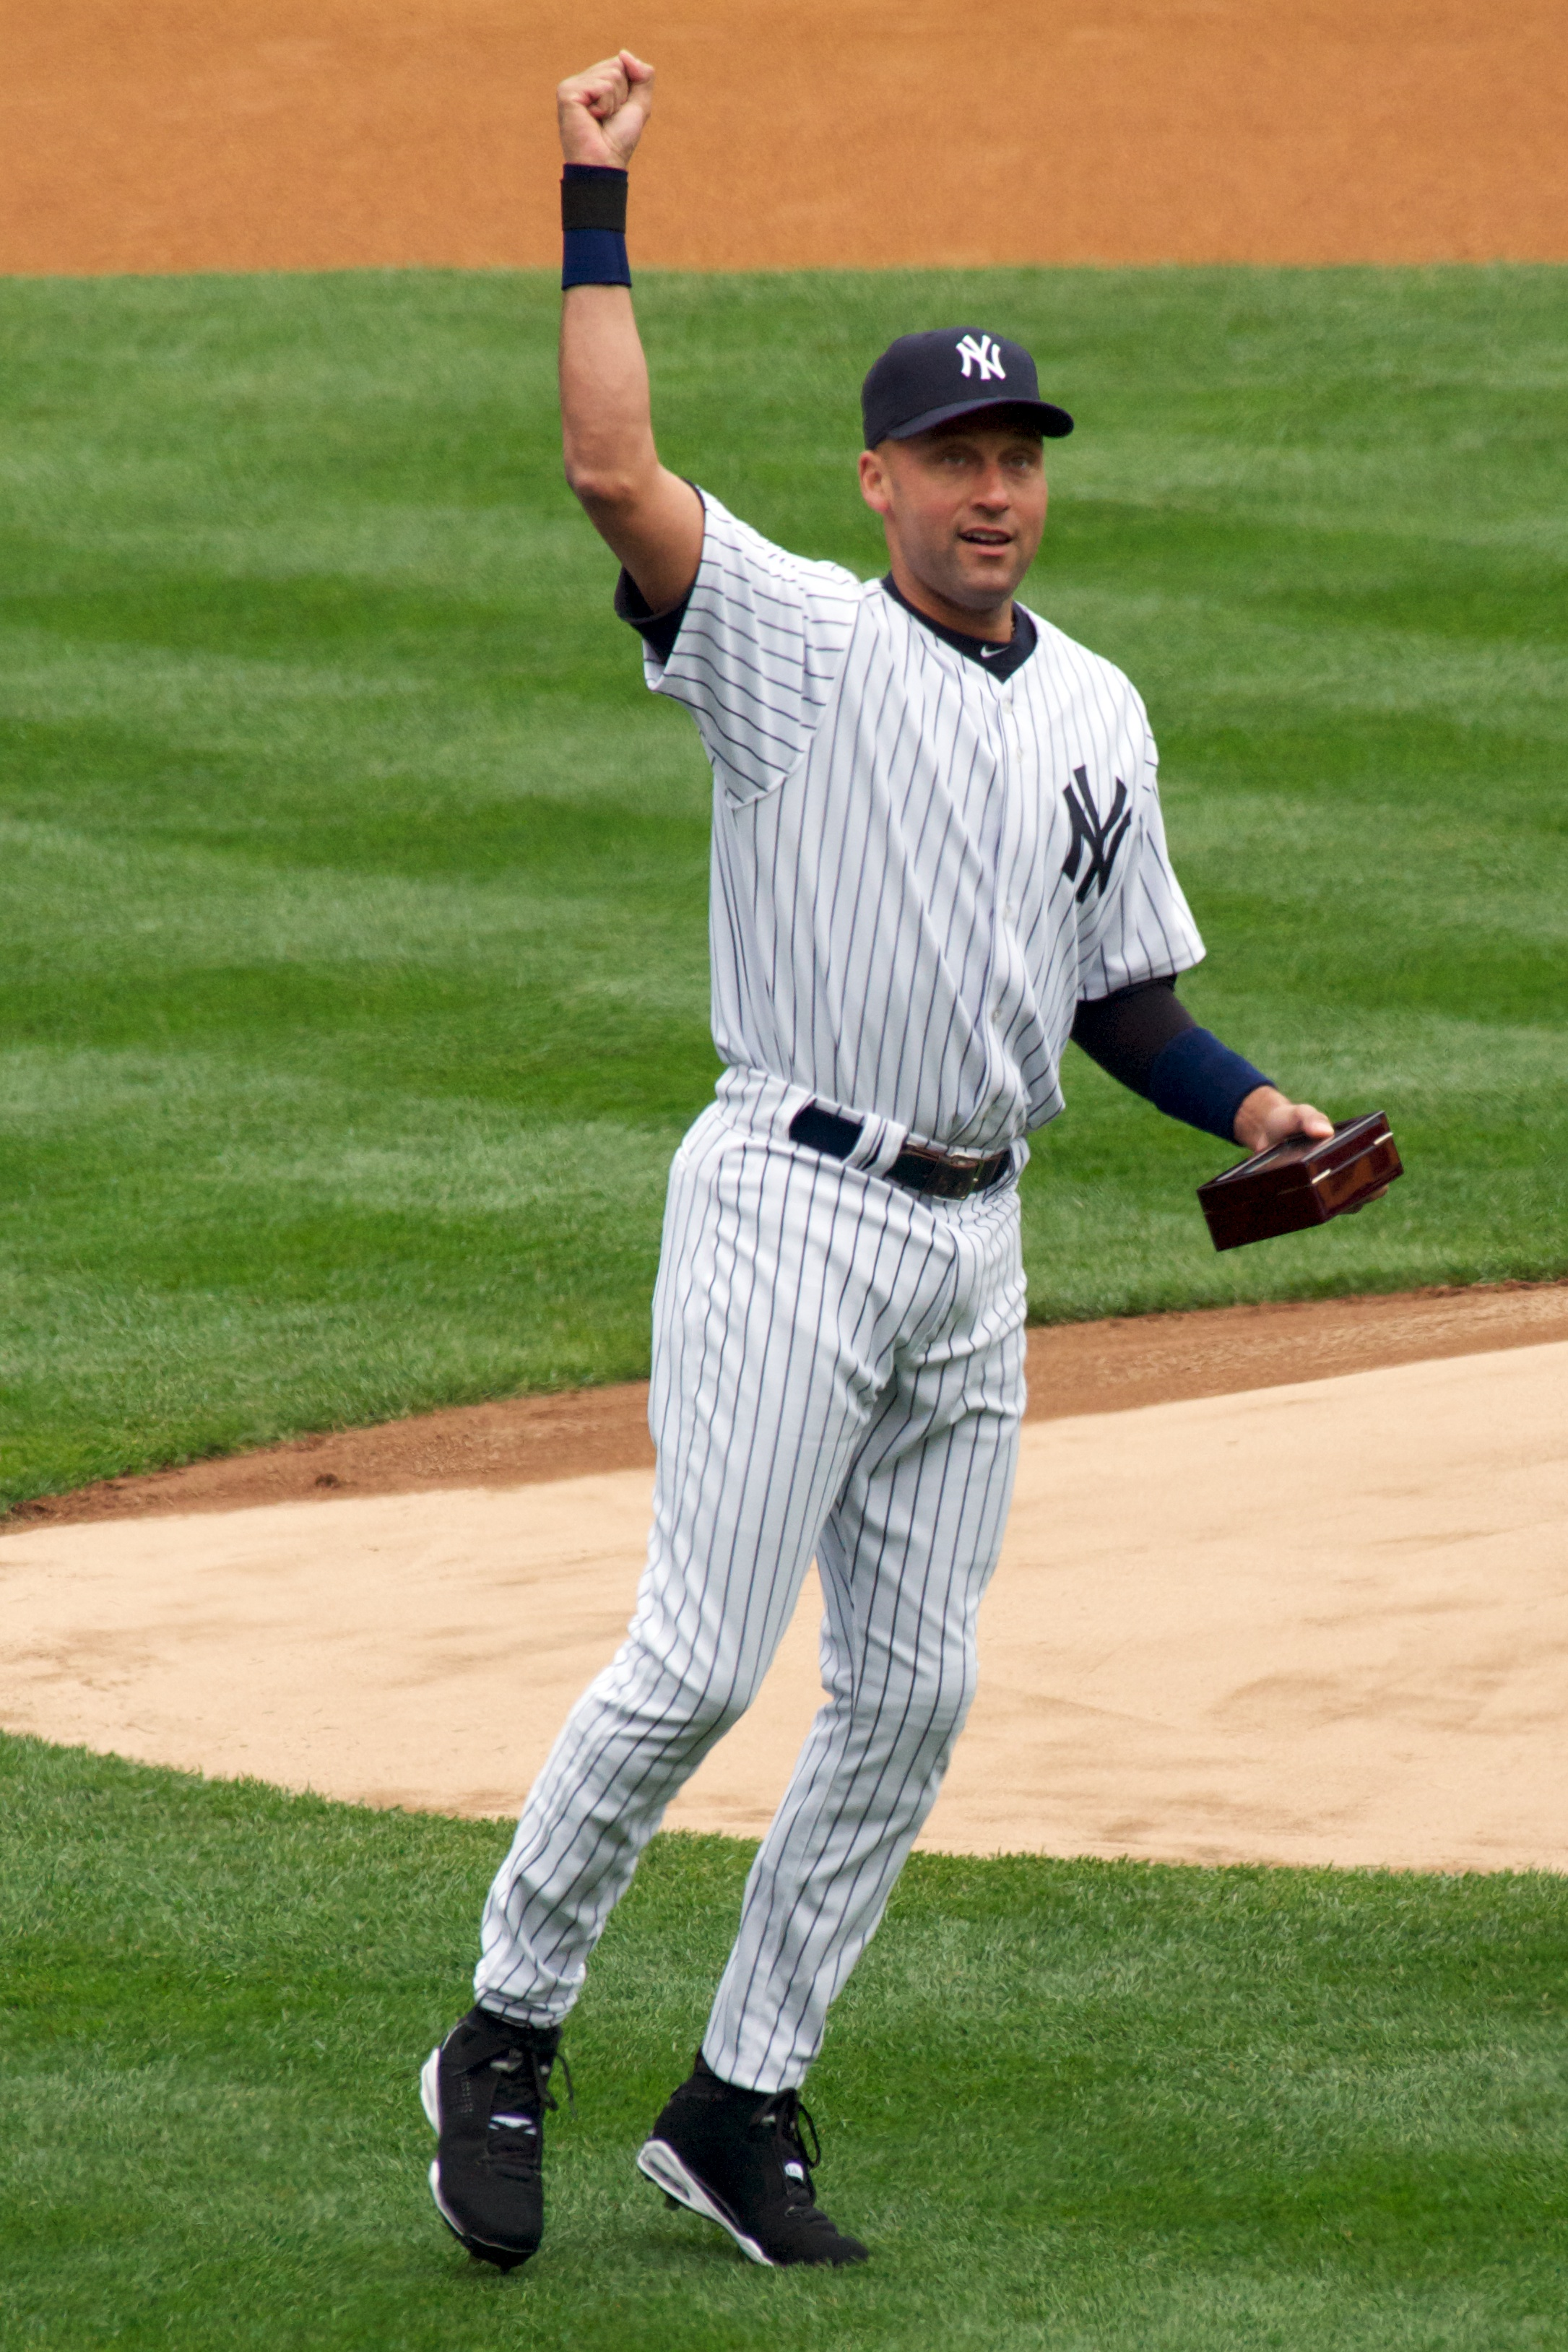 A man in a white baseball uniform with navy pinstripes raises his right arm in the air while holding a box in his left hand.